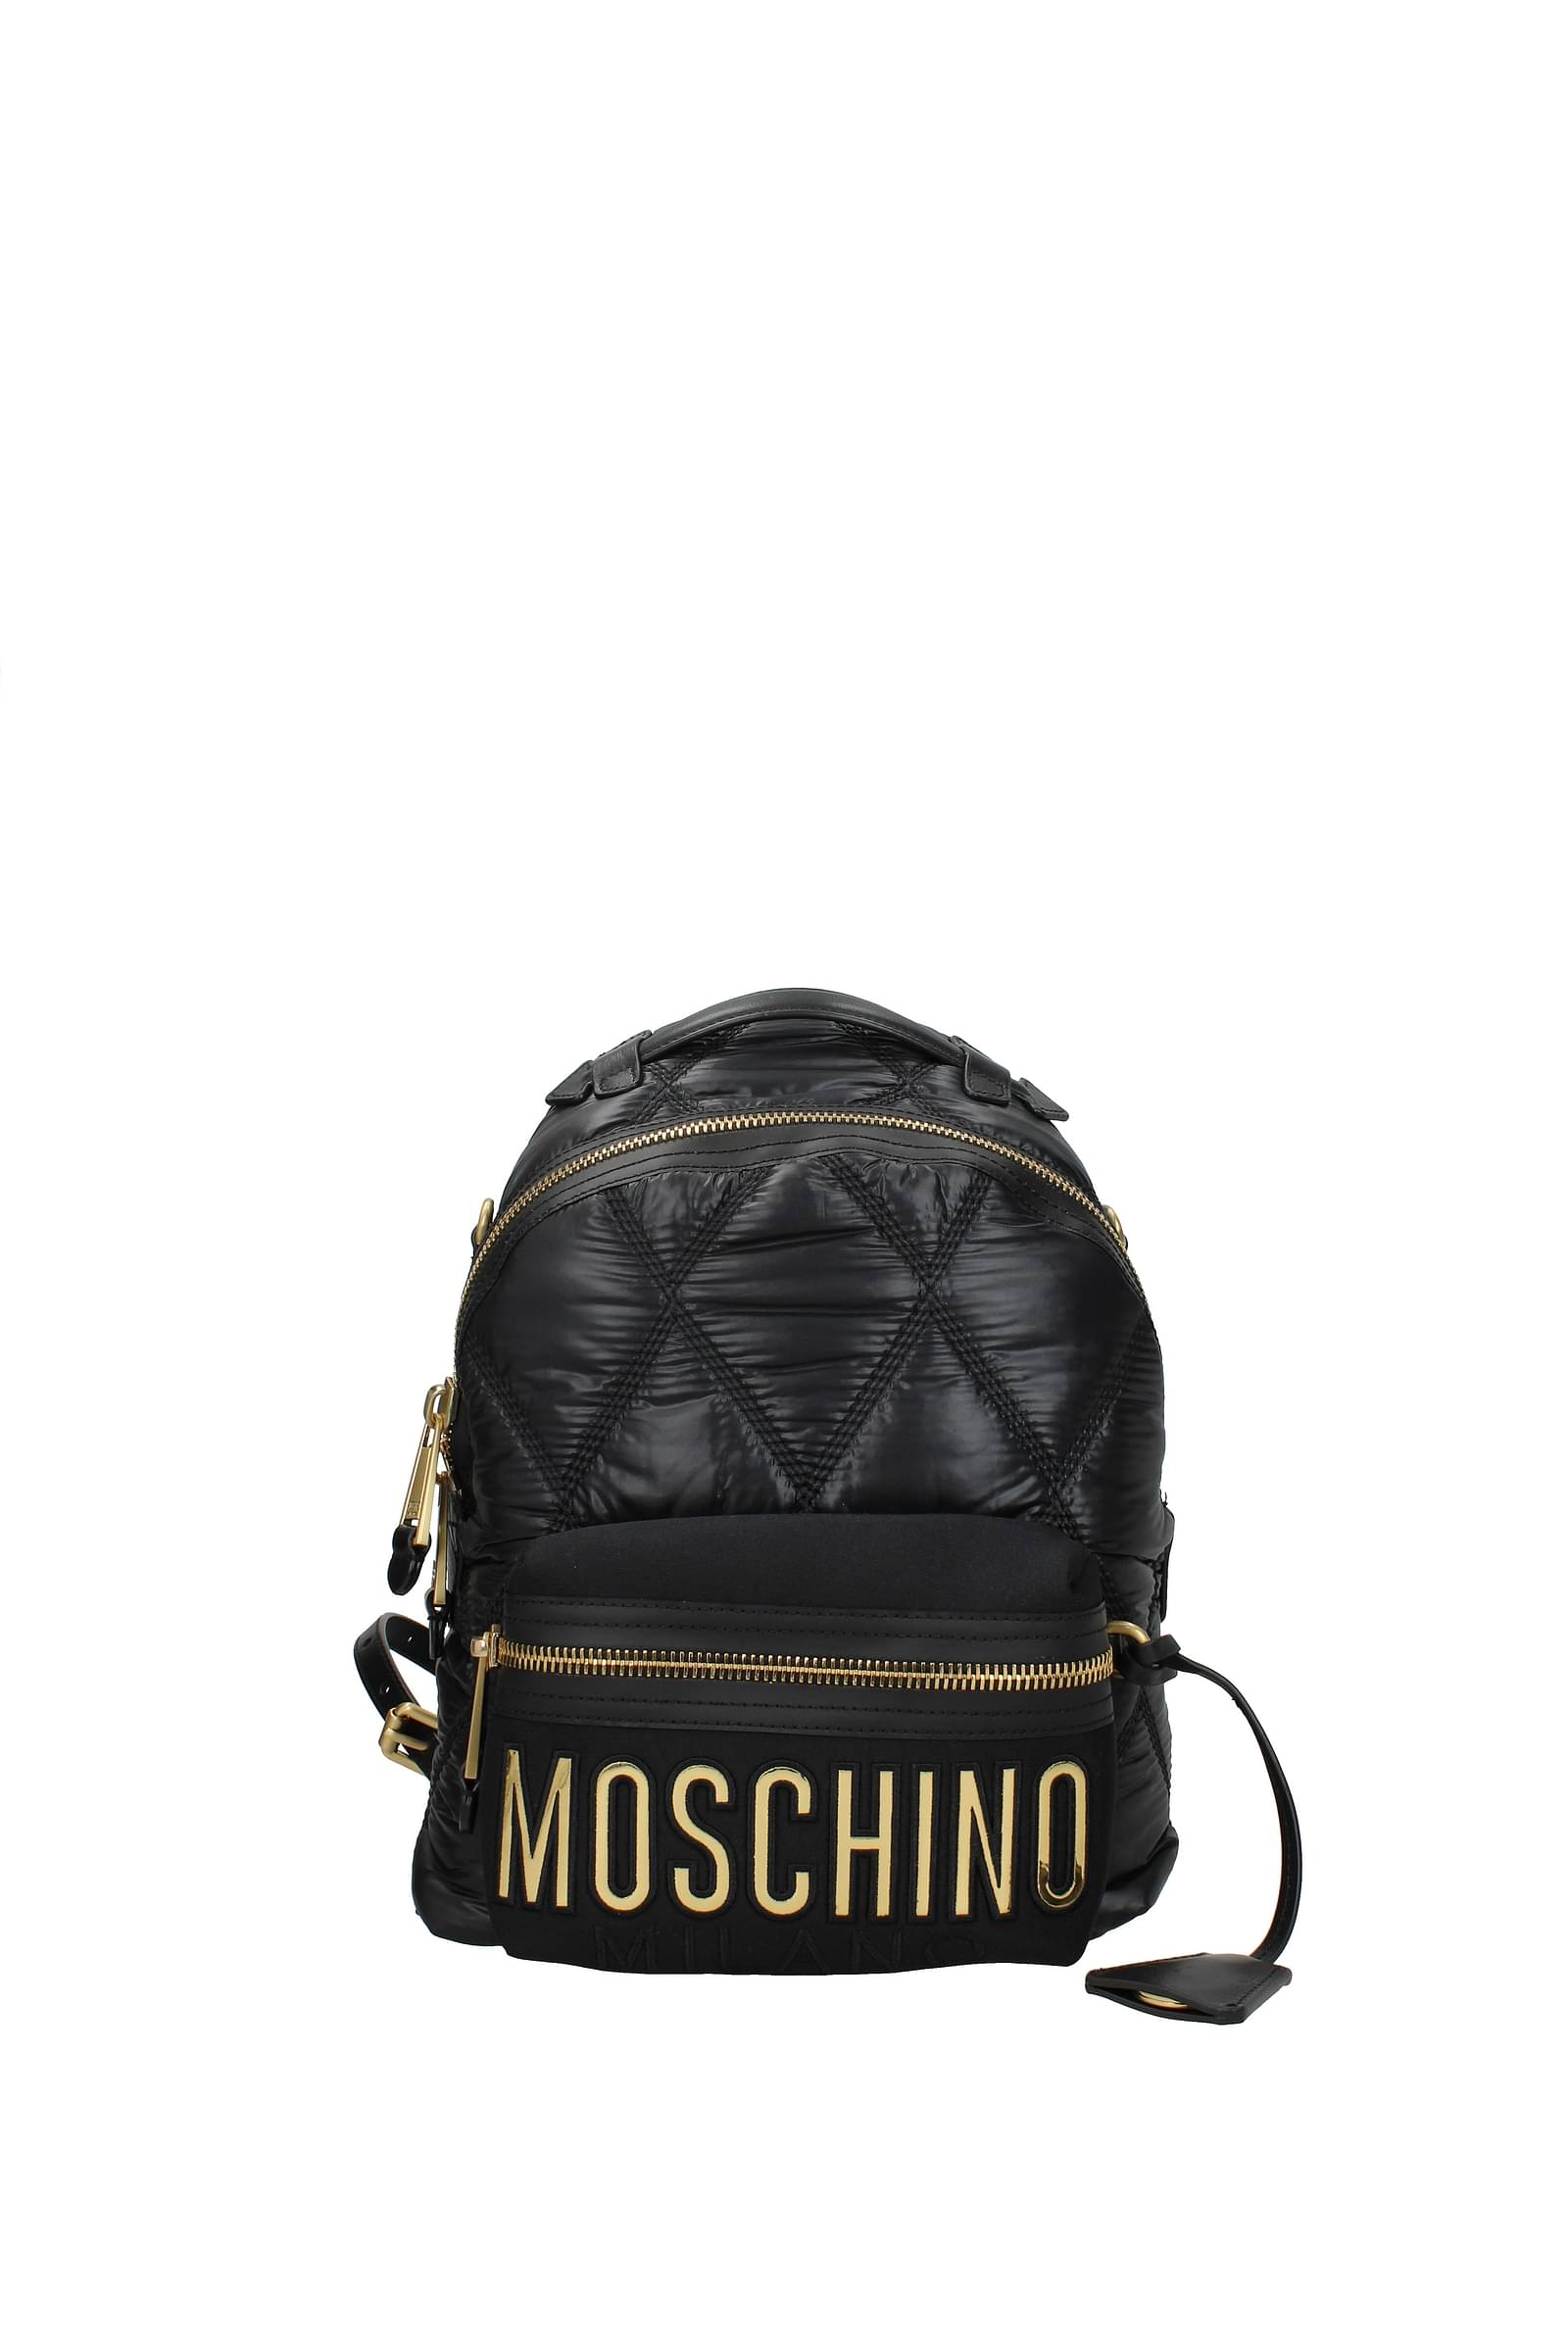 Details about Love Moschino Zaino donna pu nero JC4089PP16LM0000 backpack